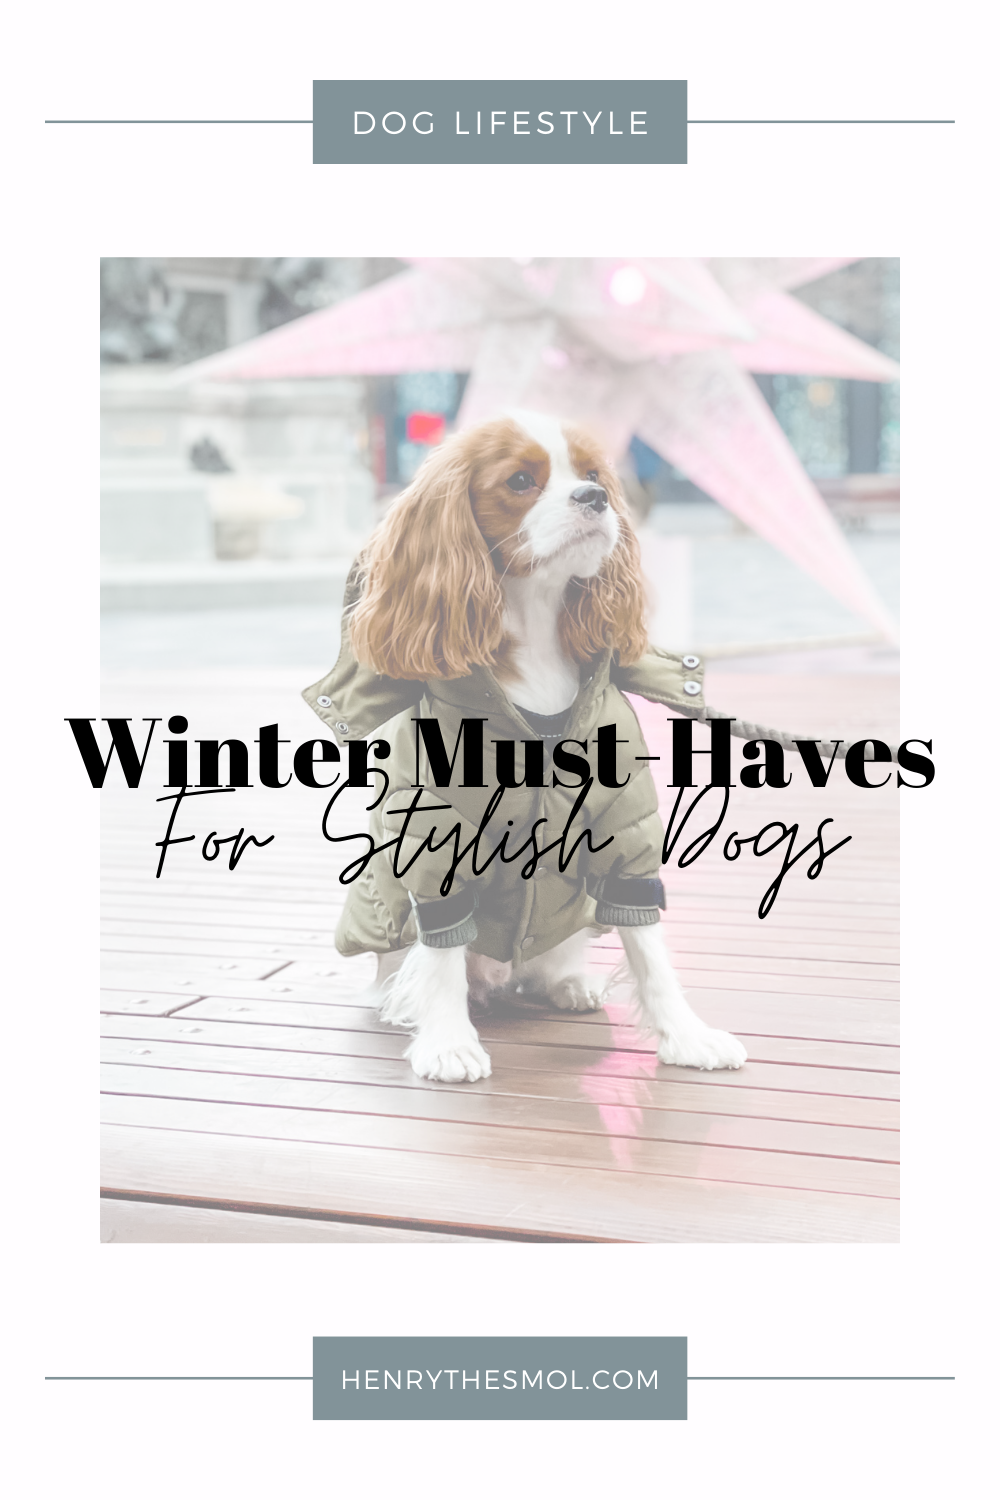 Winter Dog Essentials: Stay Warm In Cold Weather